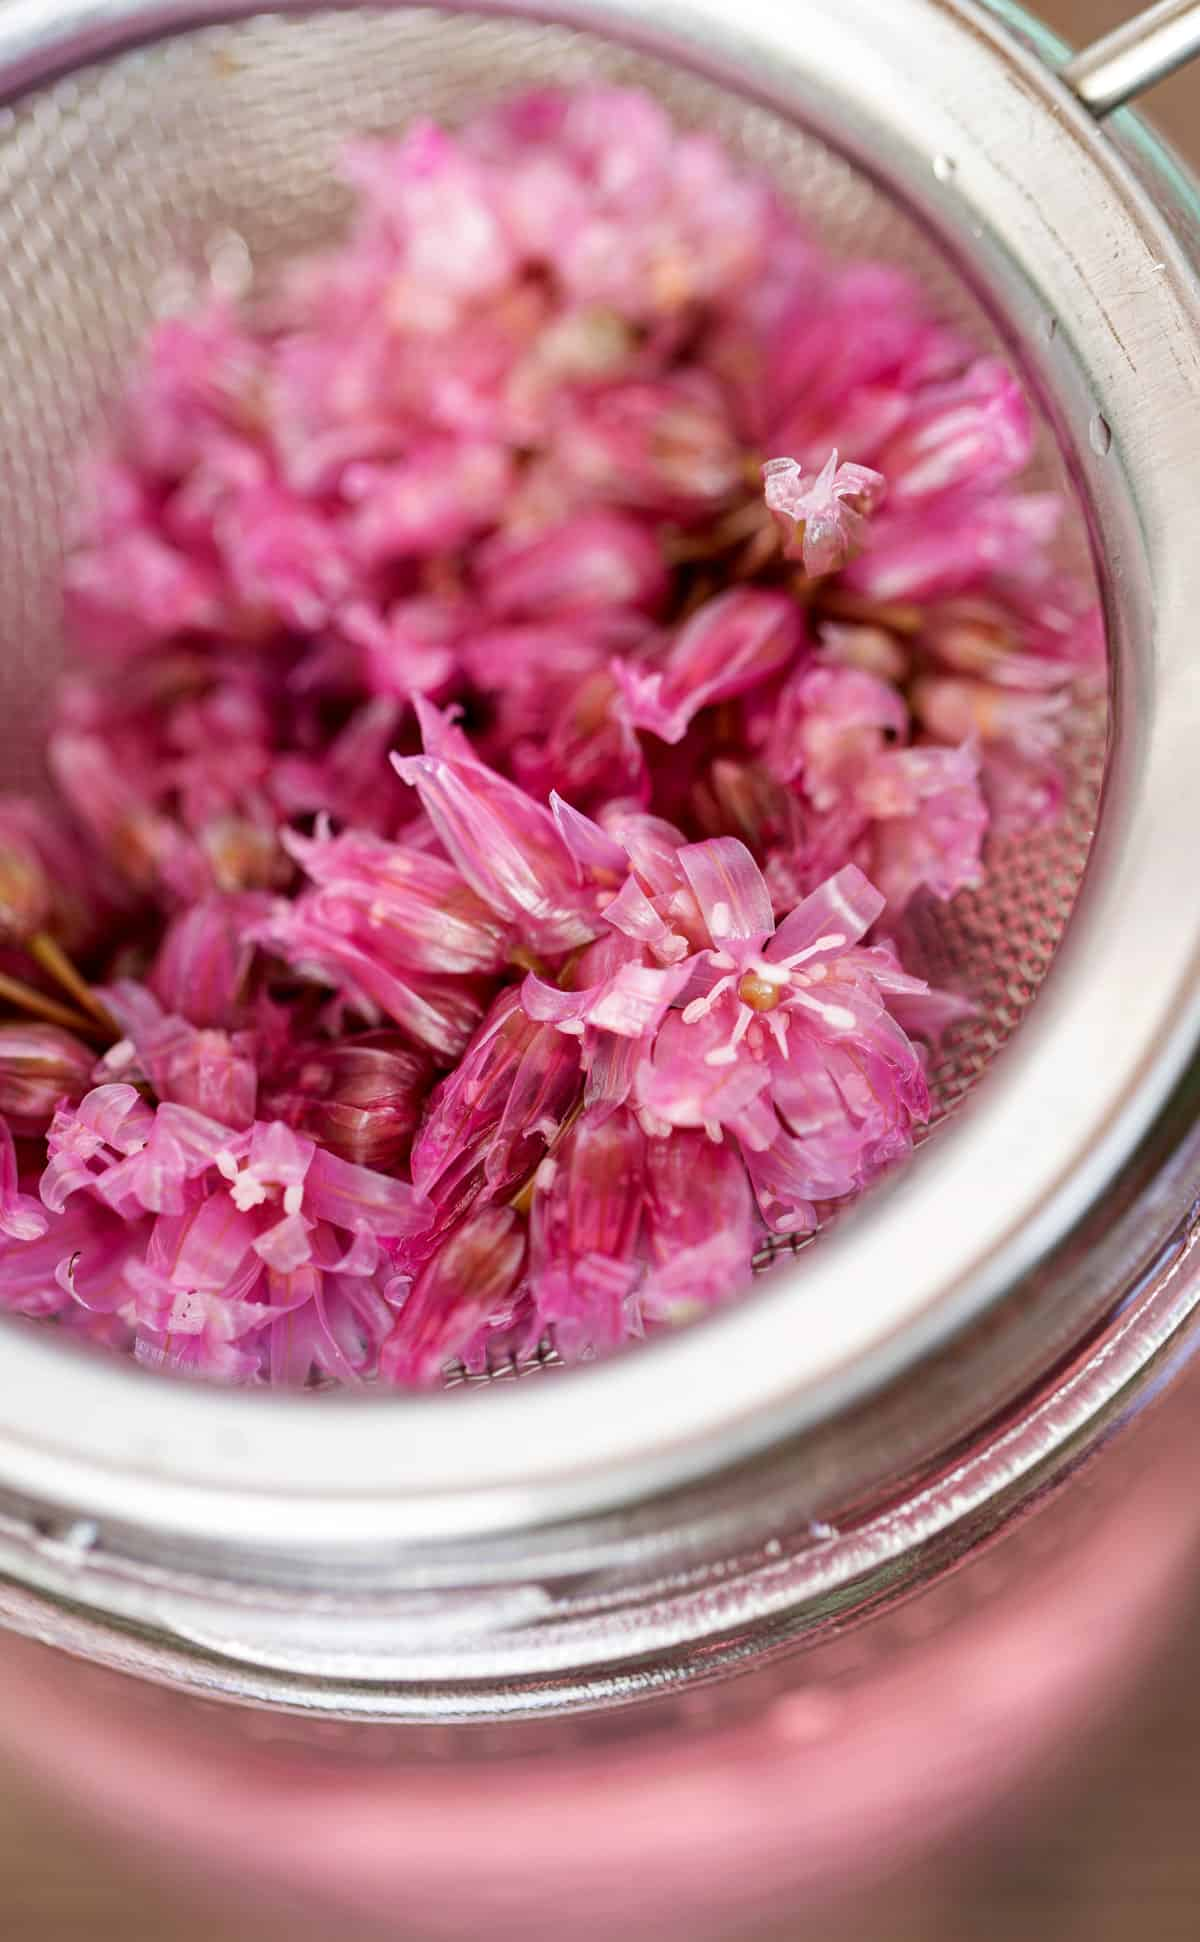 pickled chive blossoms after infusing vinegar